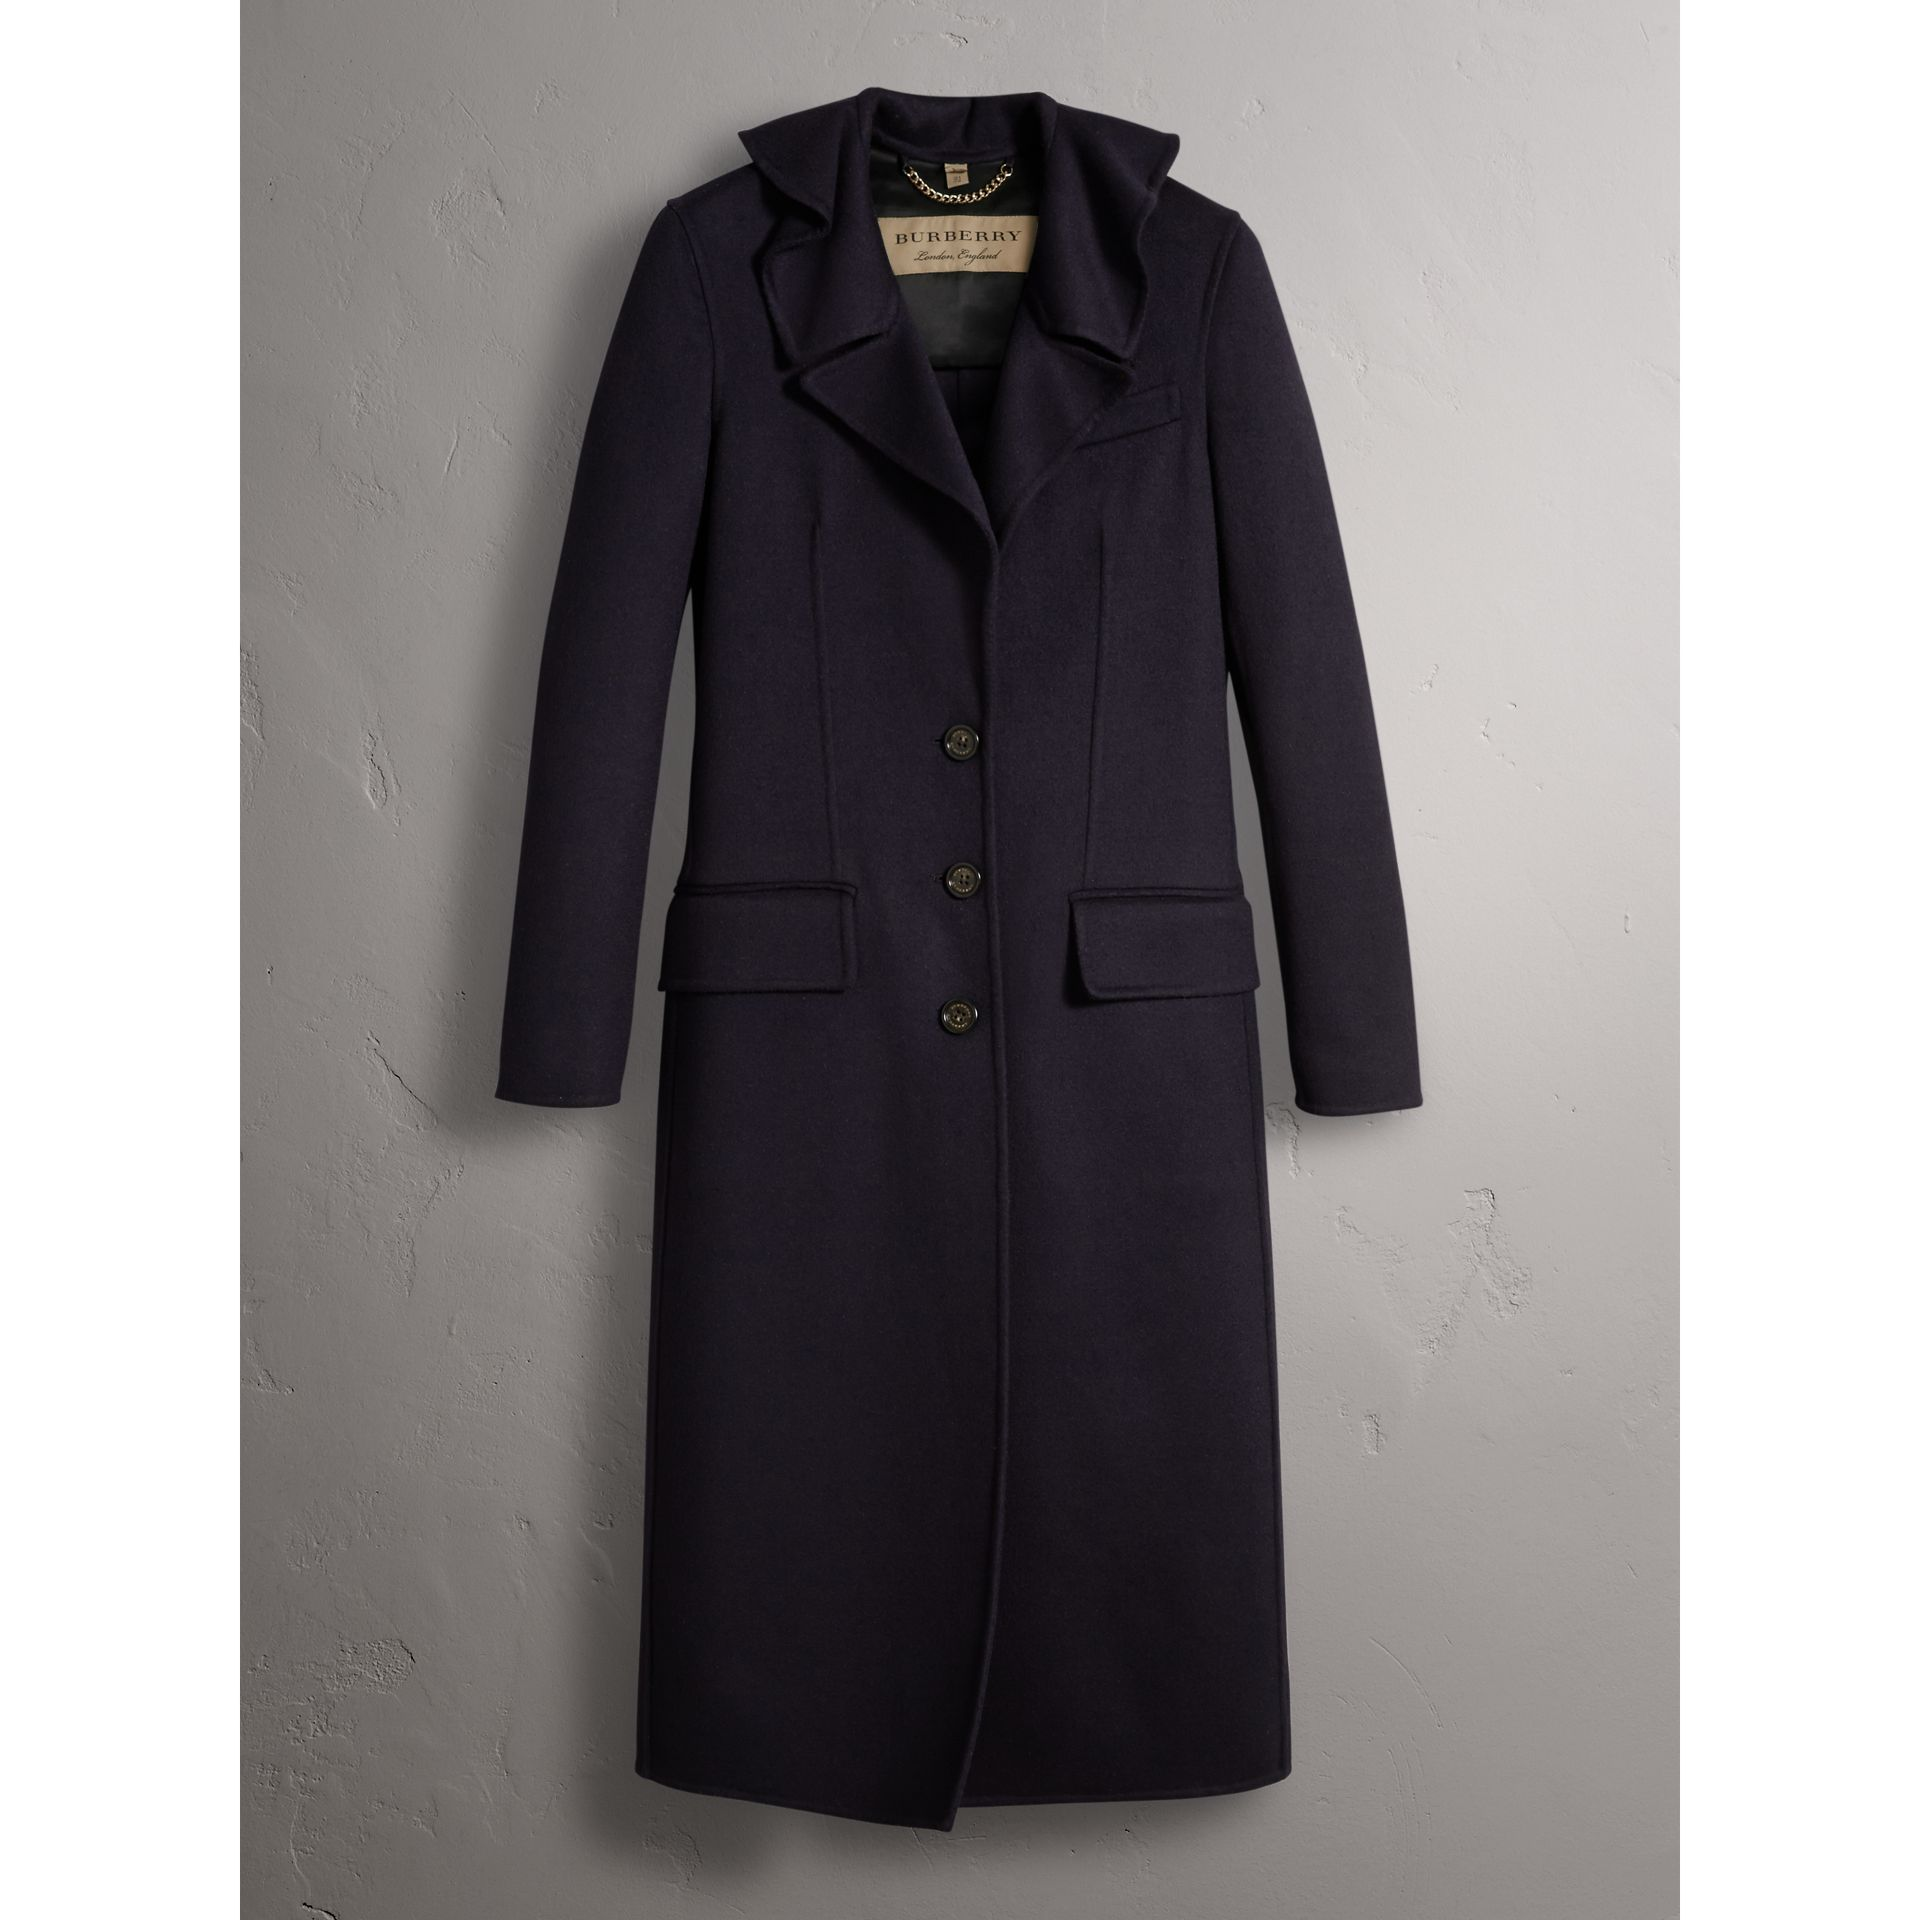 Ruffled Collar Wool Cashmere Coat in Navy - Women | Burberry Canada - gallery image 4